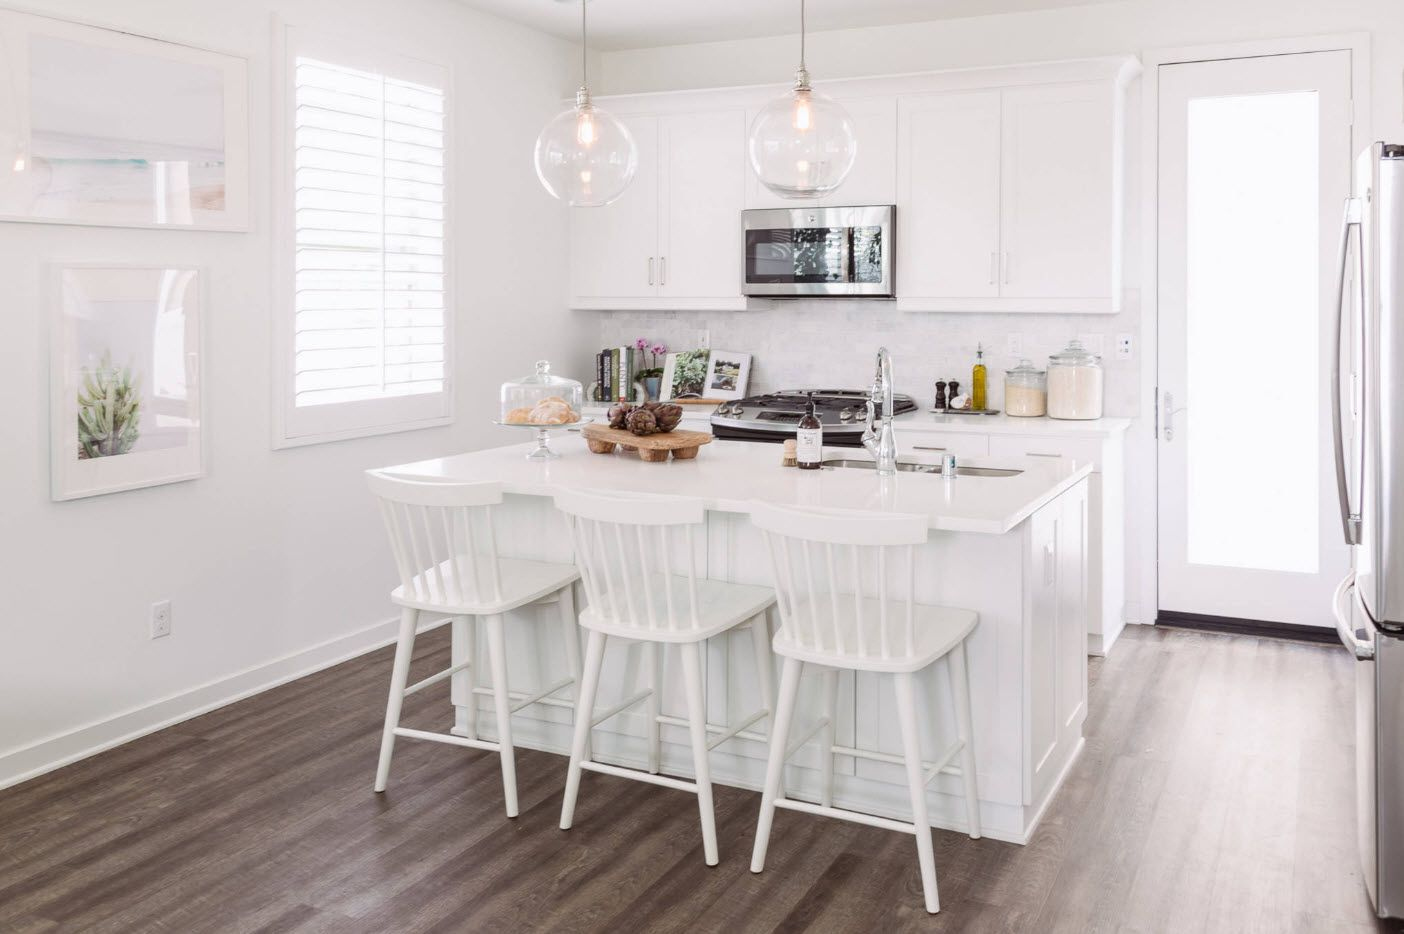 Dining kitchen island with white chairs